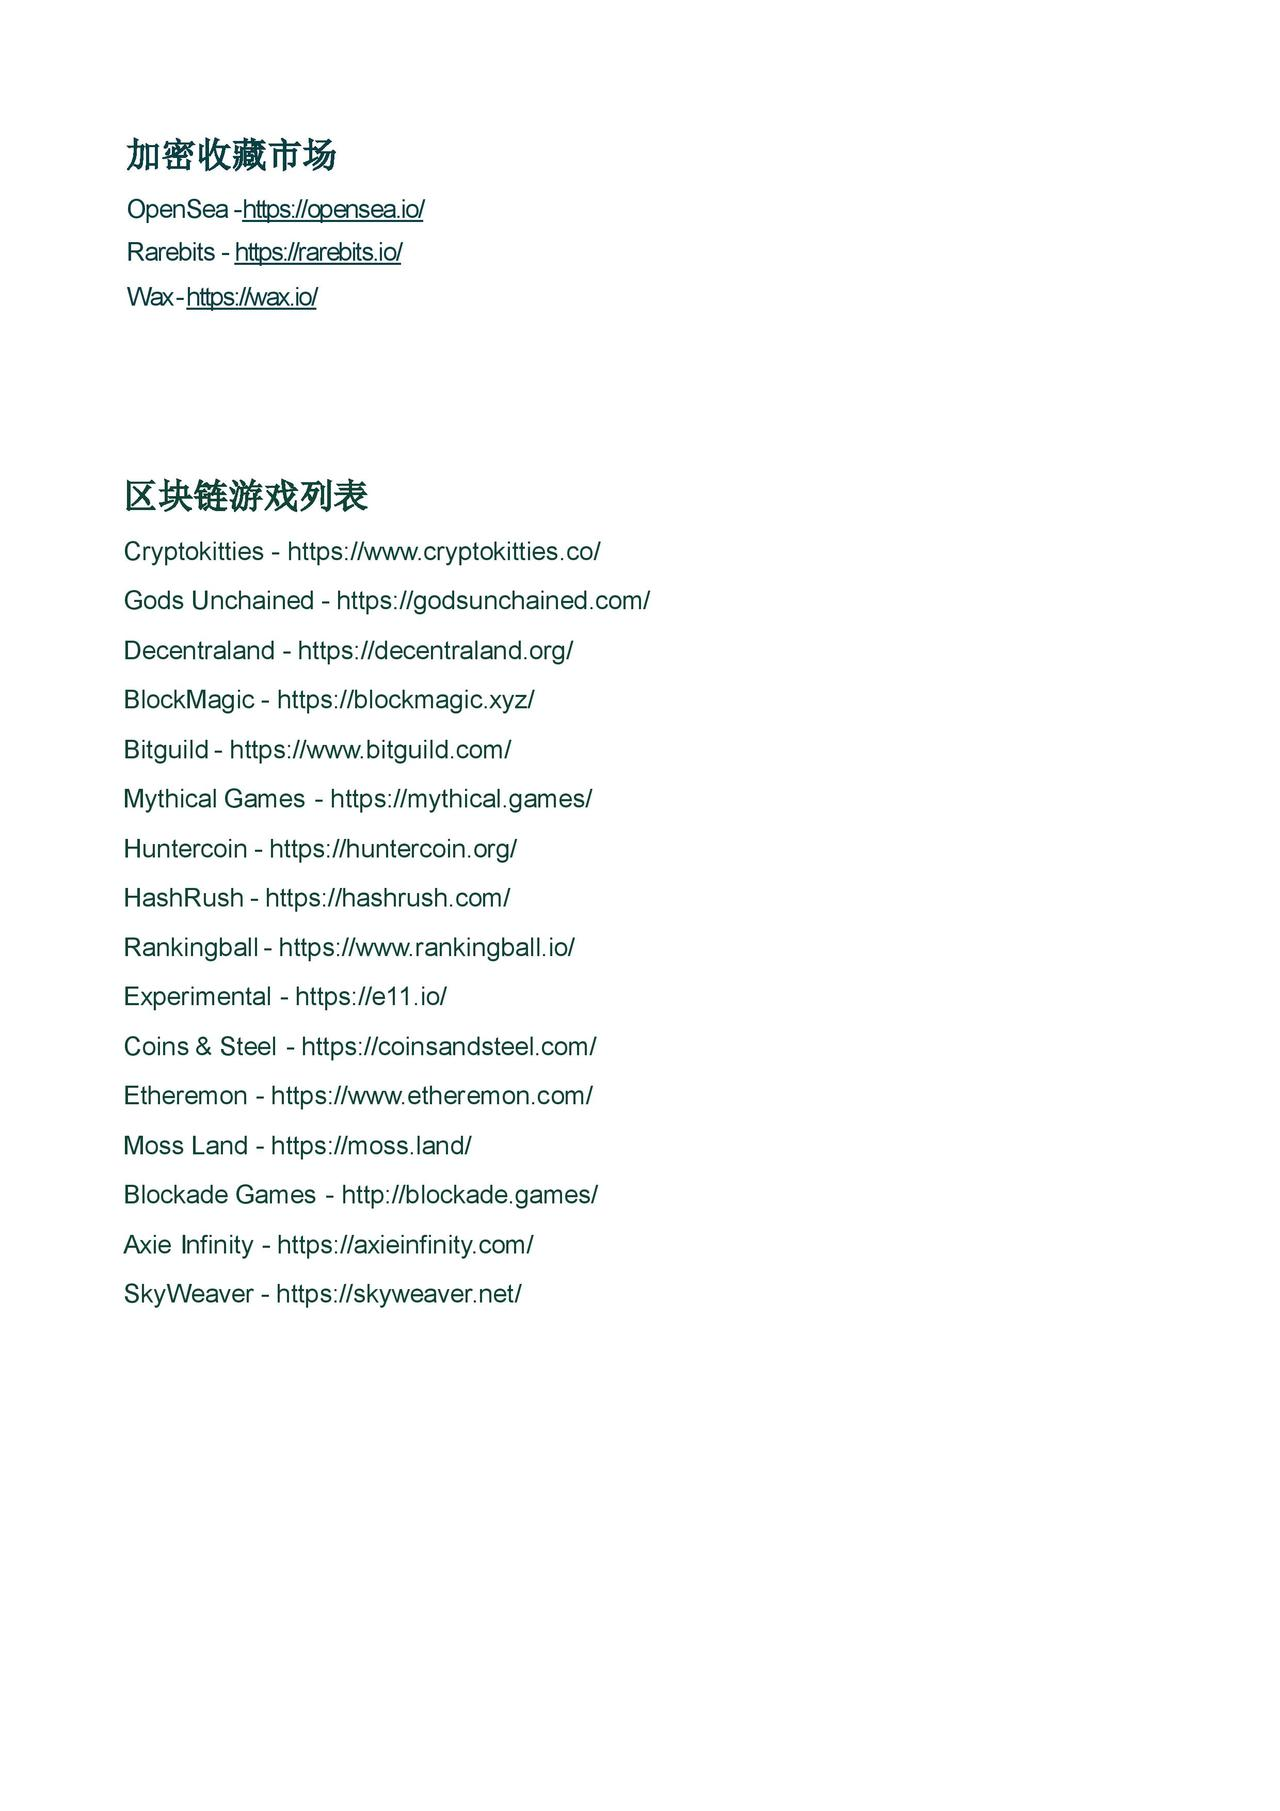 Document-page-025.jpg